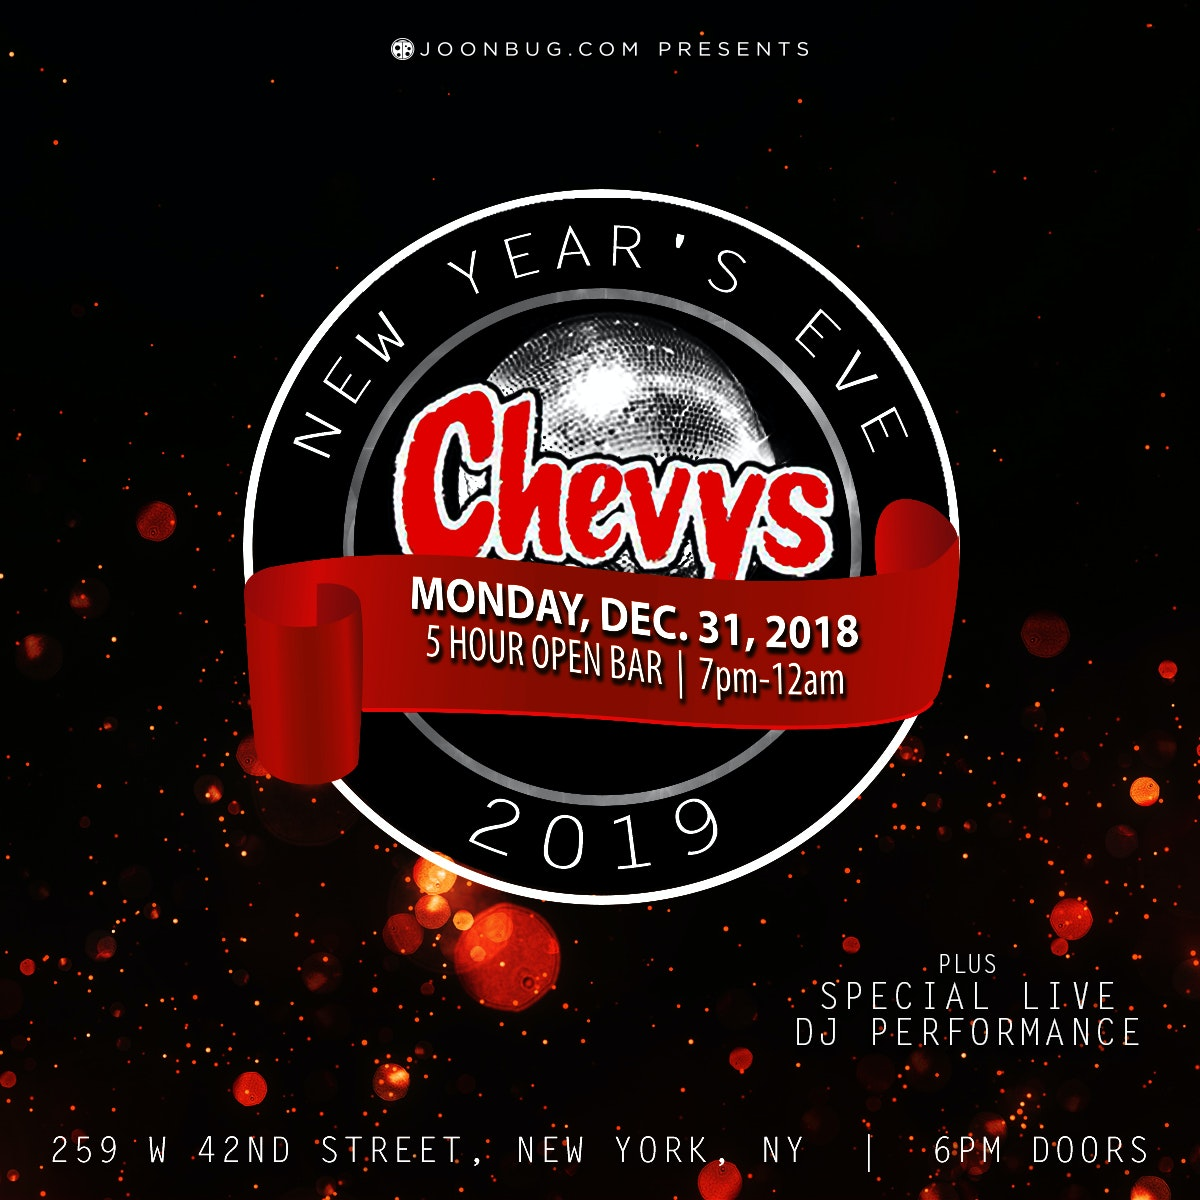 Chevys Times Square